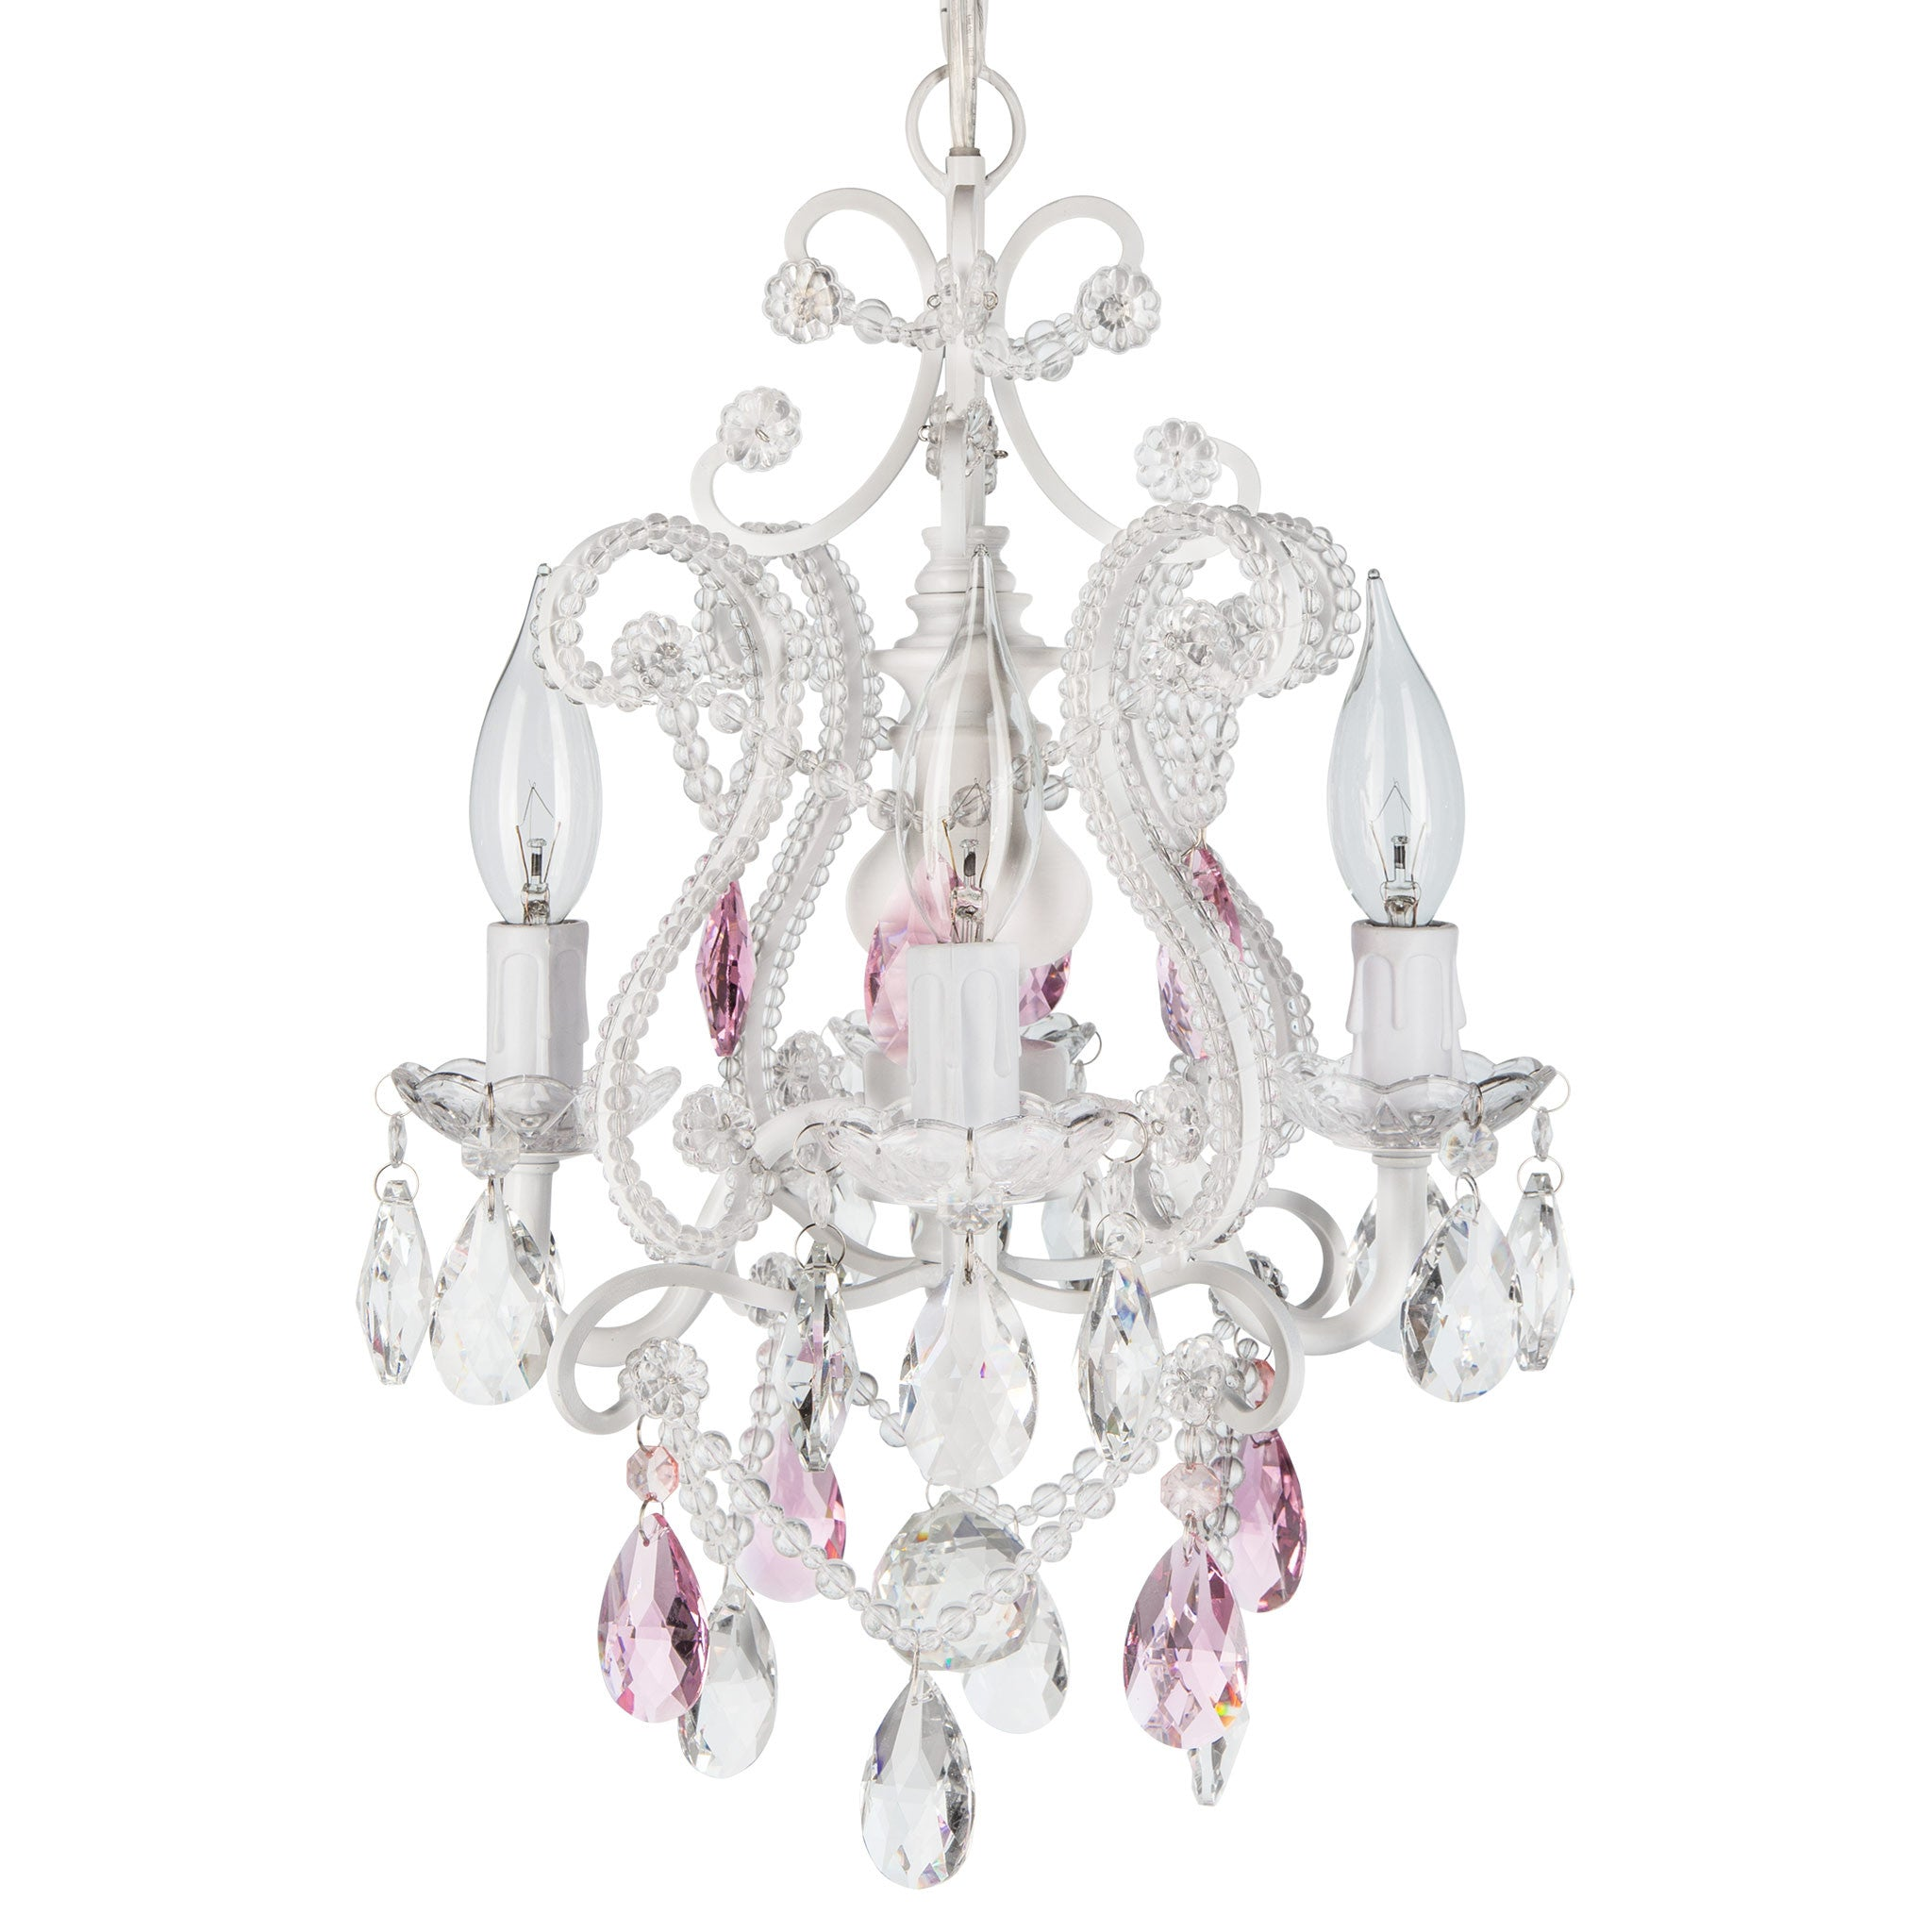 Amalfi Decor 4 Light Mini Crystal Beaded Plug-In Chandelier (White w/ Pink Crystals) | Wrought Iron Frame with Glass Crystals